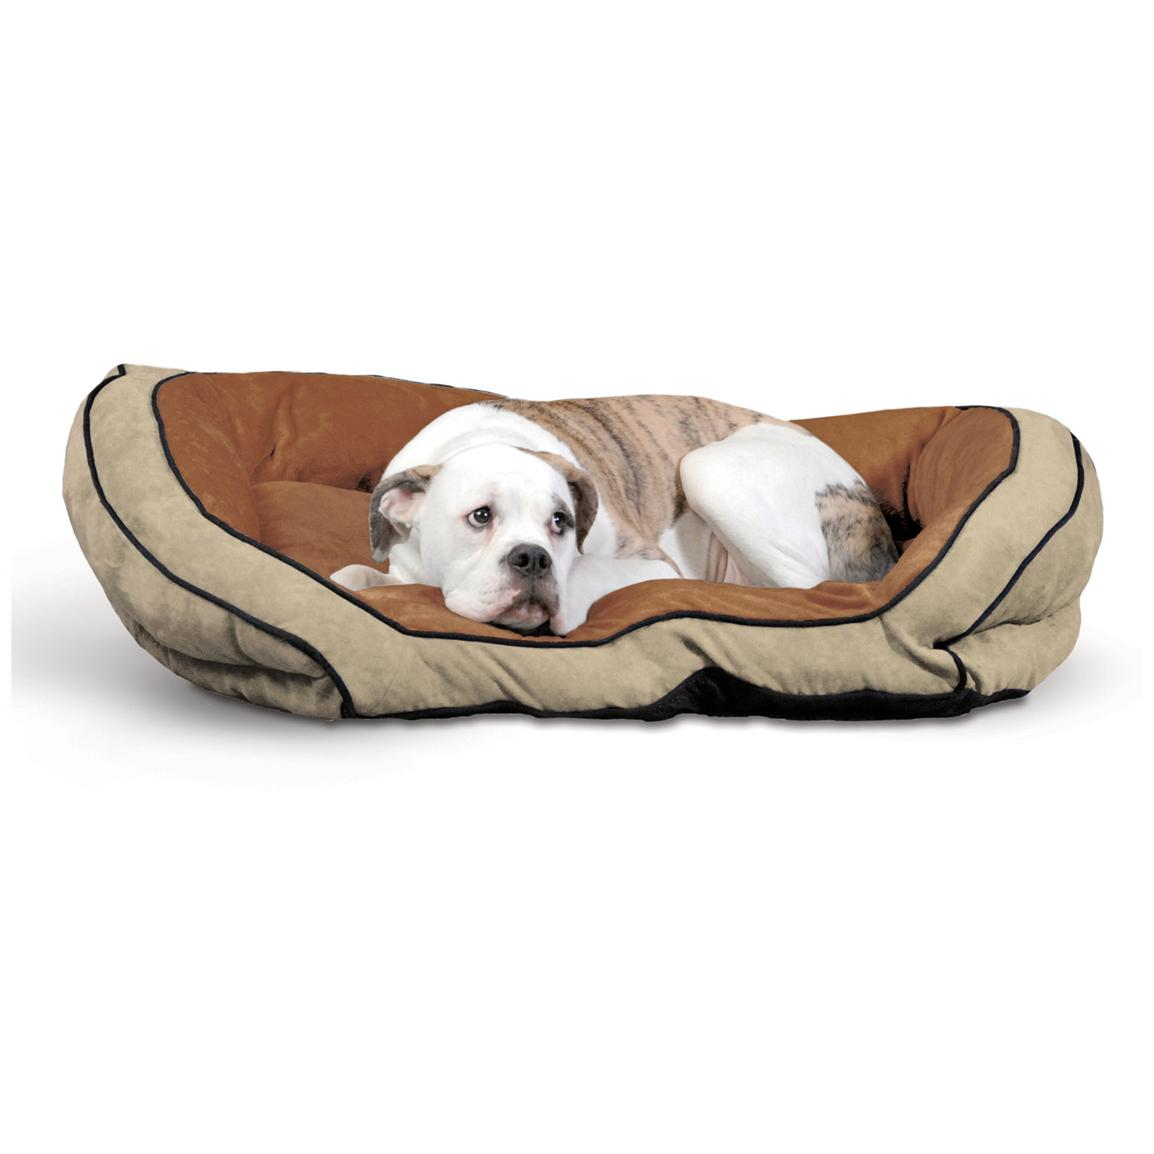 K&H™ Pet Products Bolster Couch, Mocha / Tan - Large